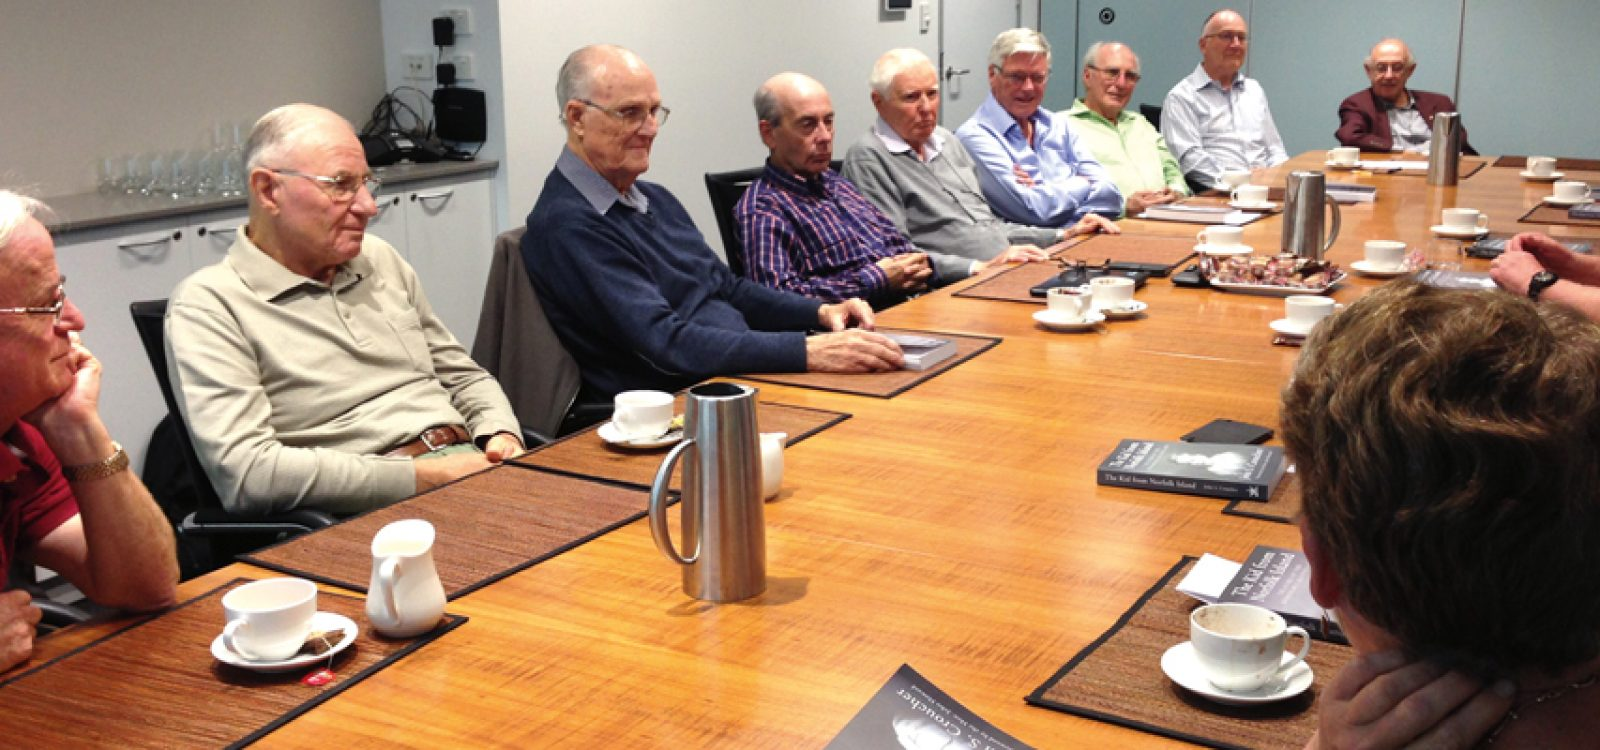 Retired Actuaries Group, Sydney (RAGS)